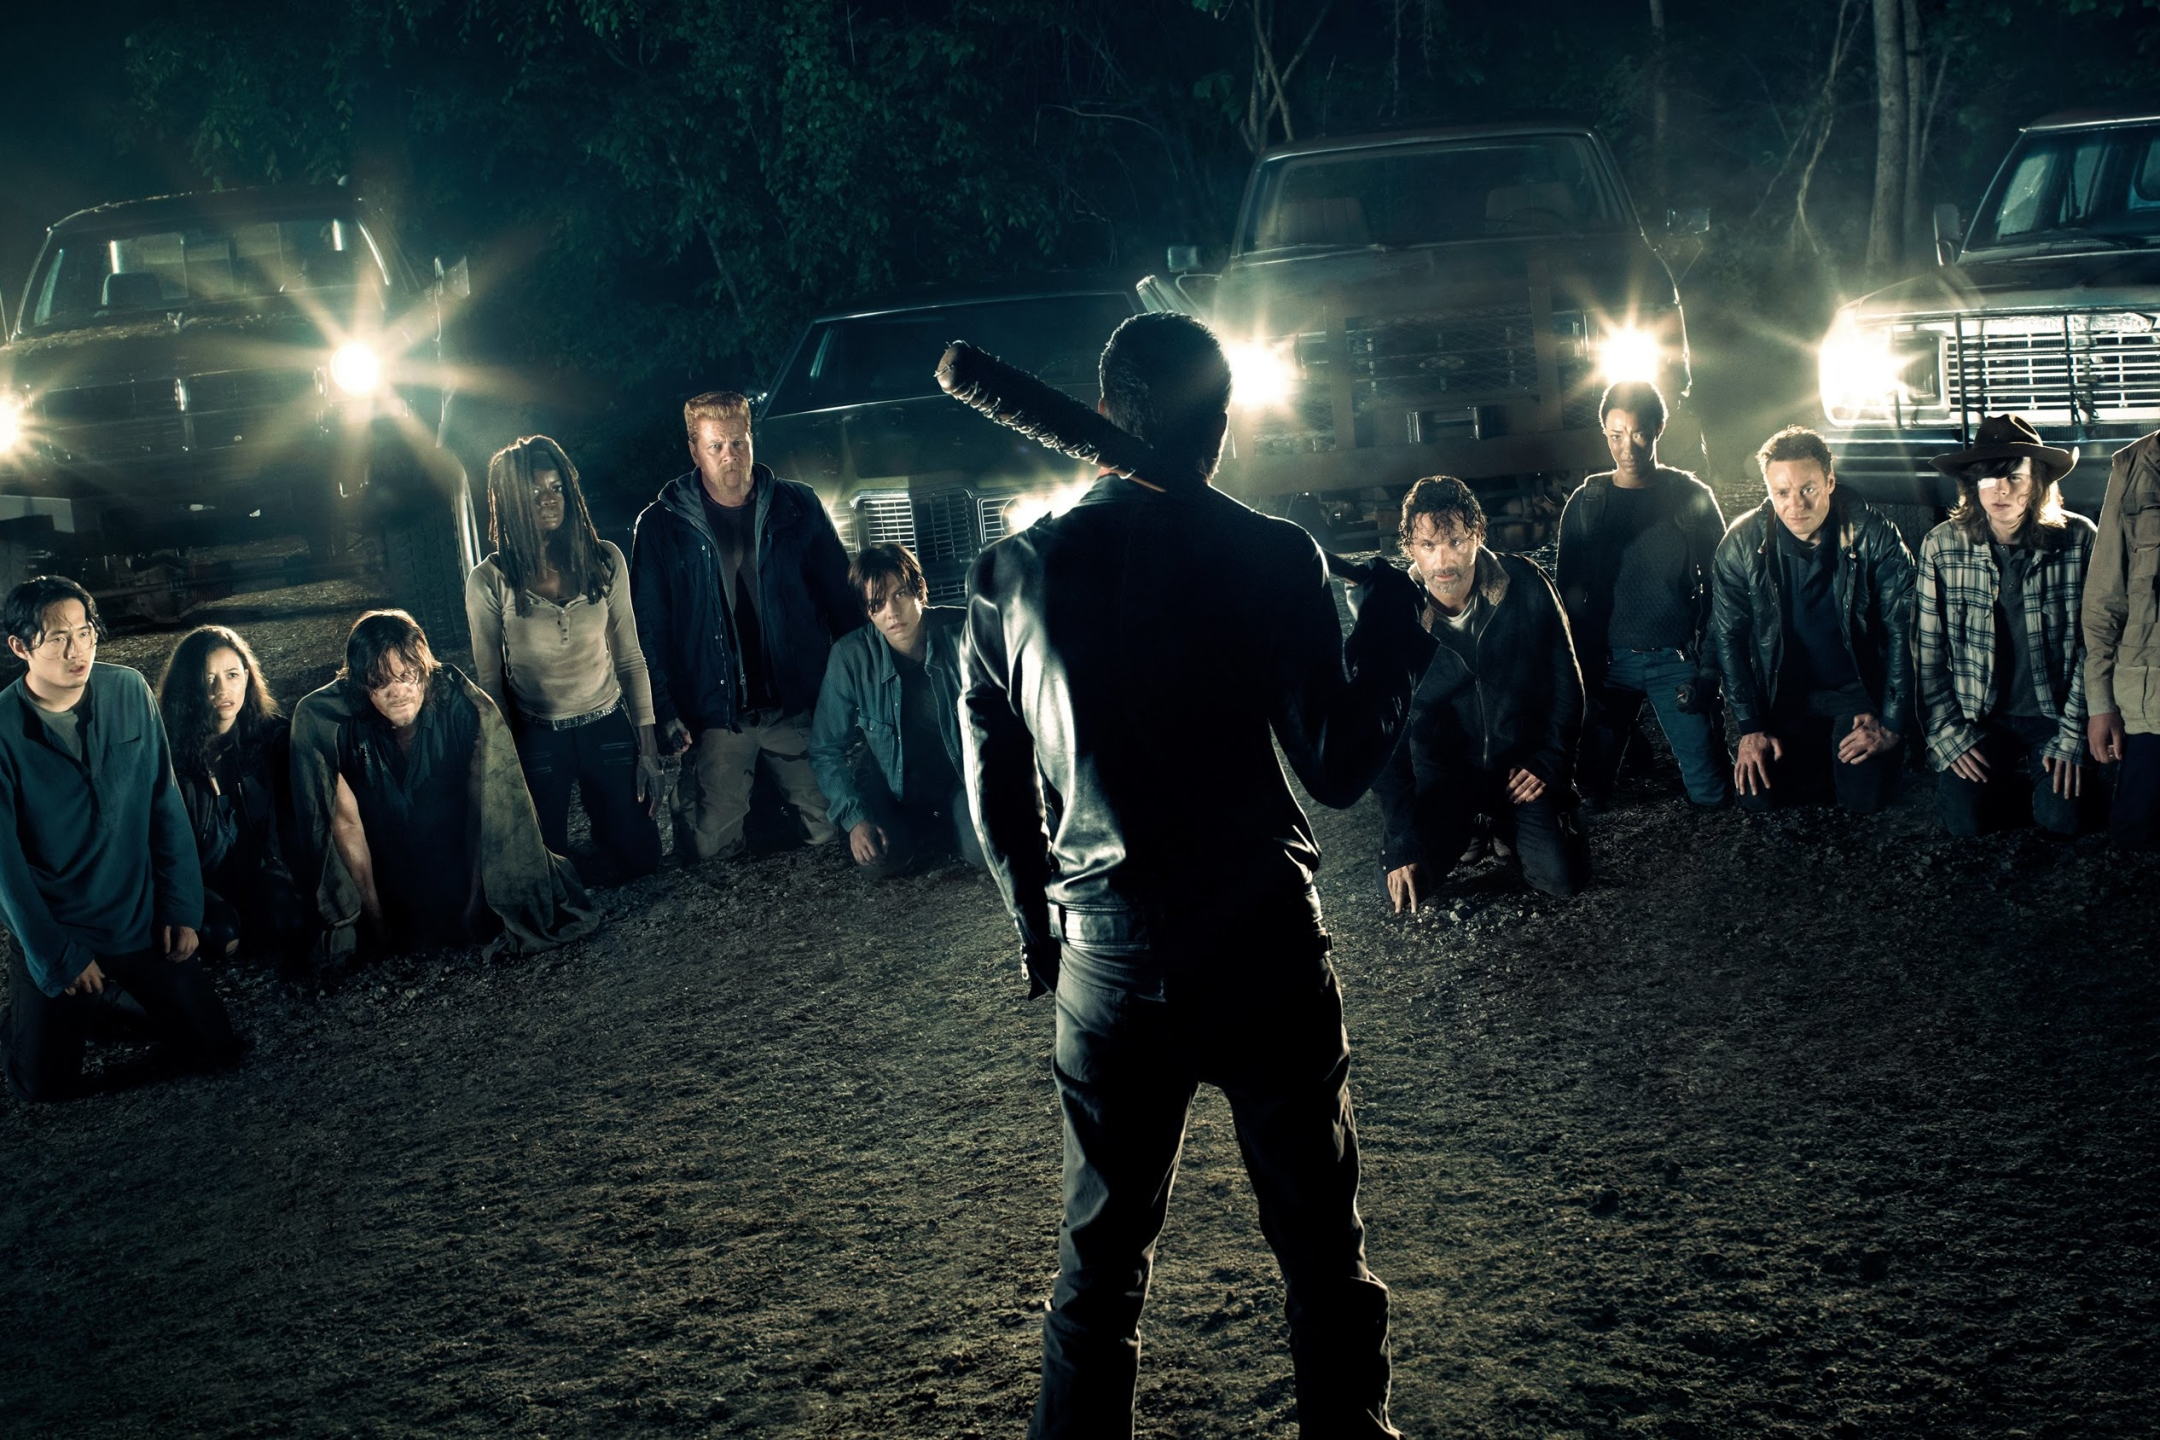 Tv Show The Walking Dead 2160x1440 Wallpaper Id 713146 Mobile